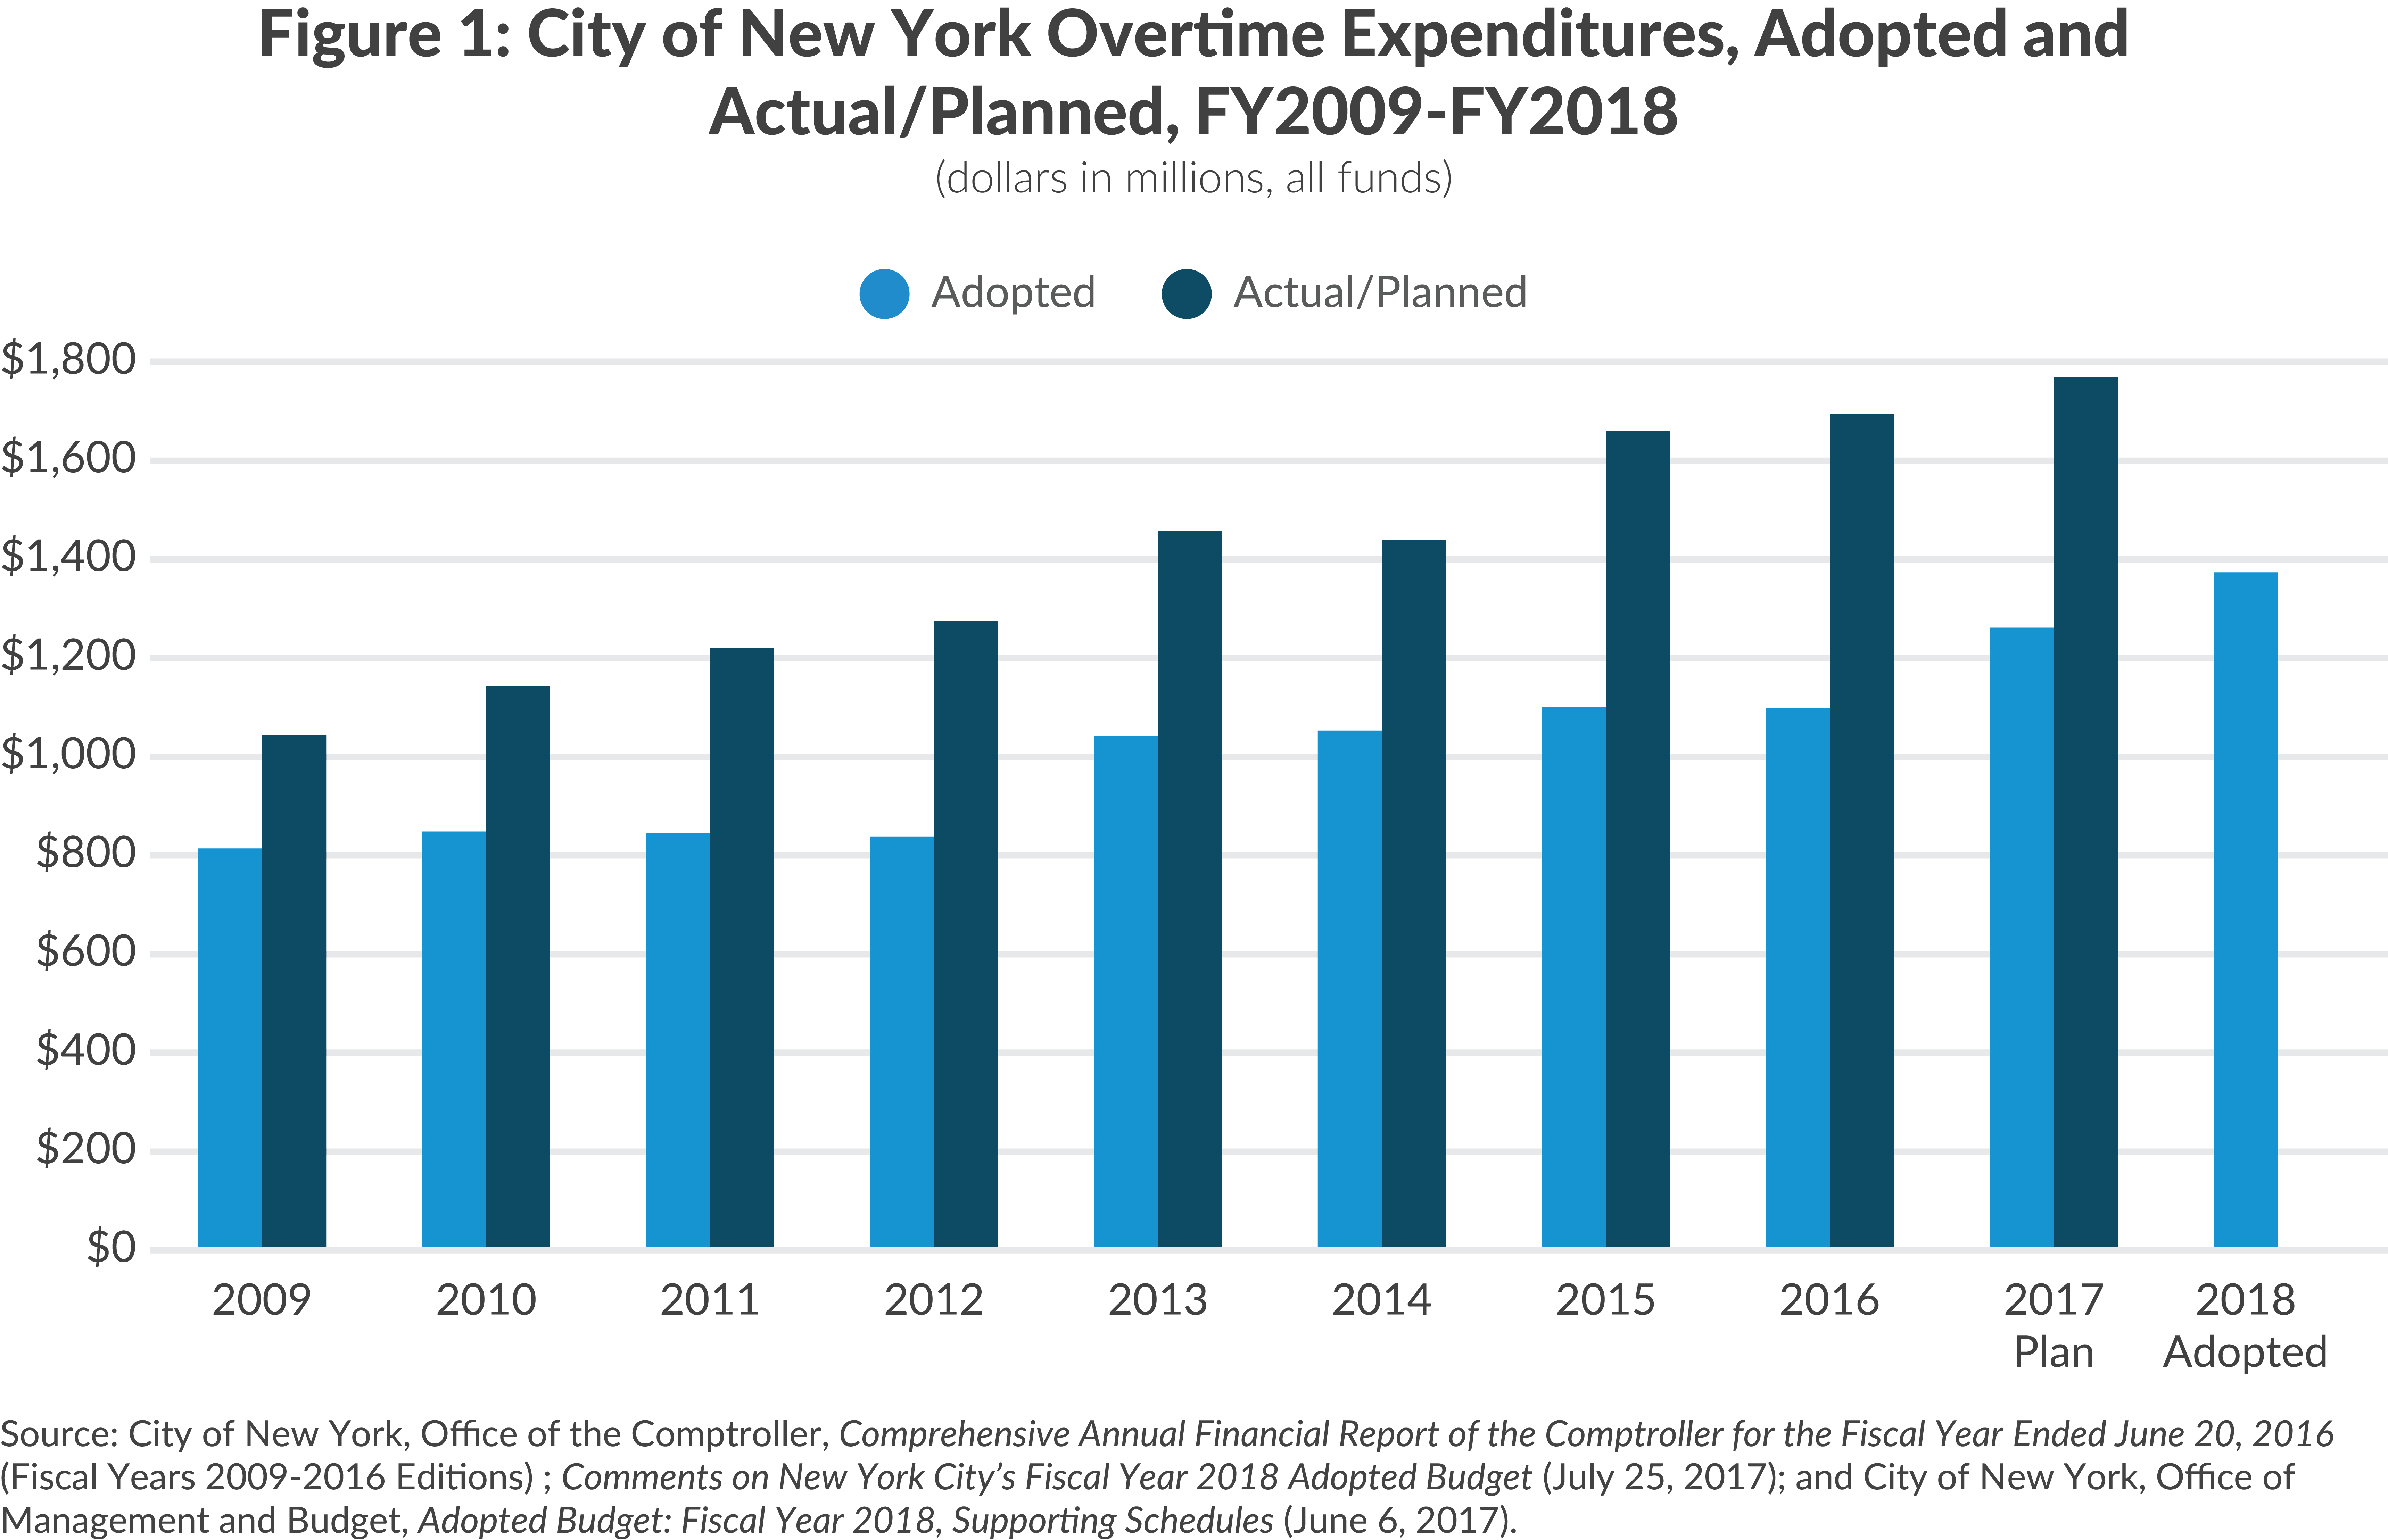 NYC Overtime Expenditures